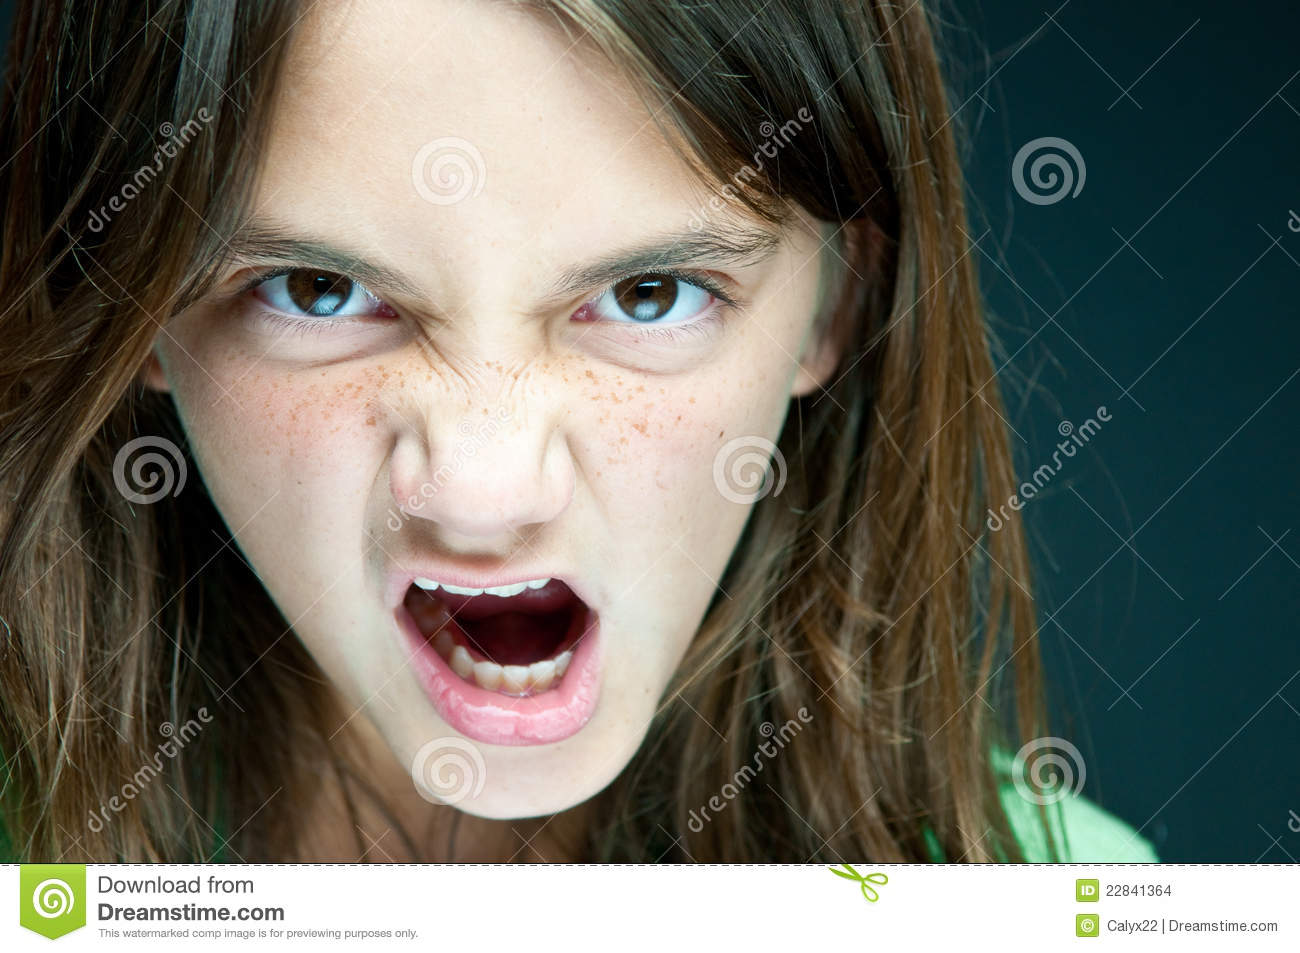 The Angry Girl Stock Images - Image: 22841364